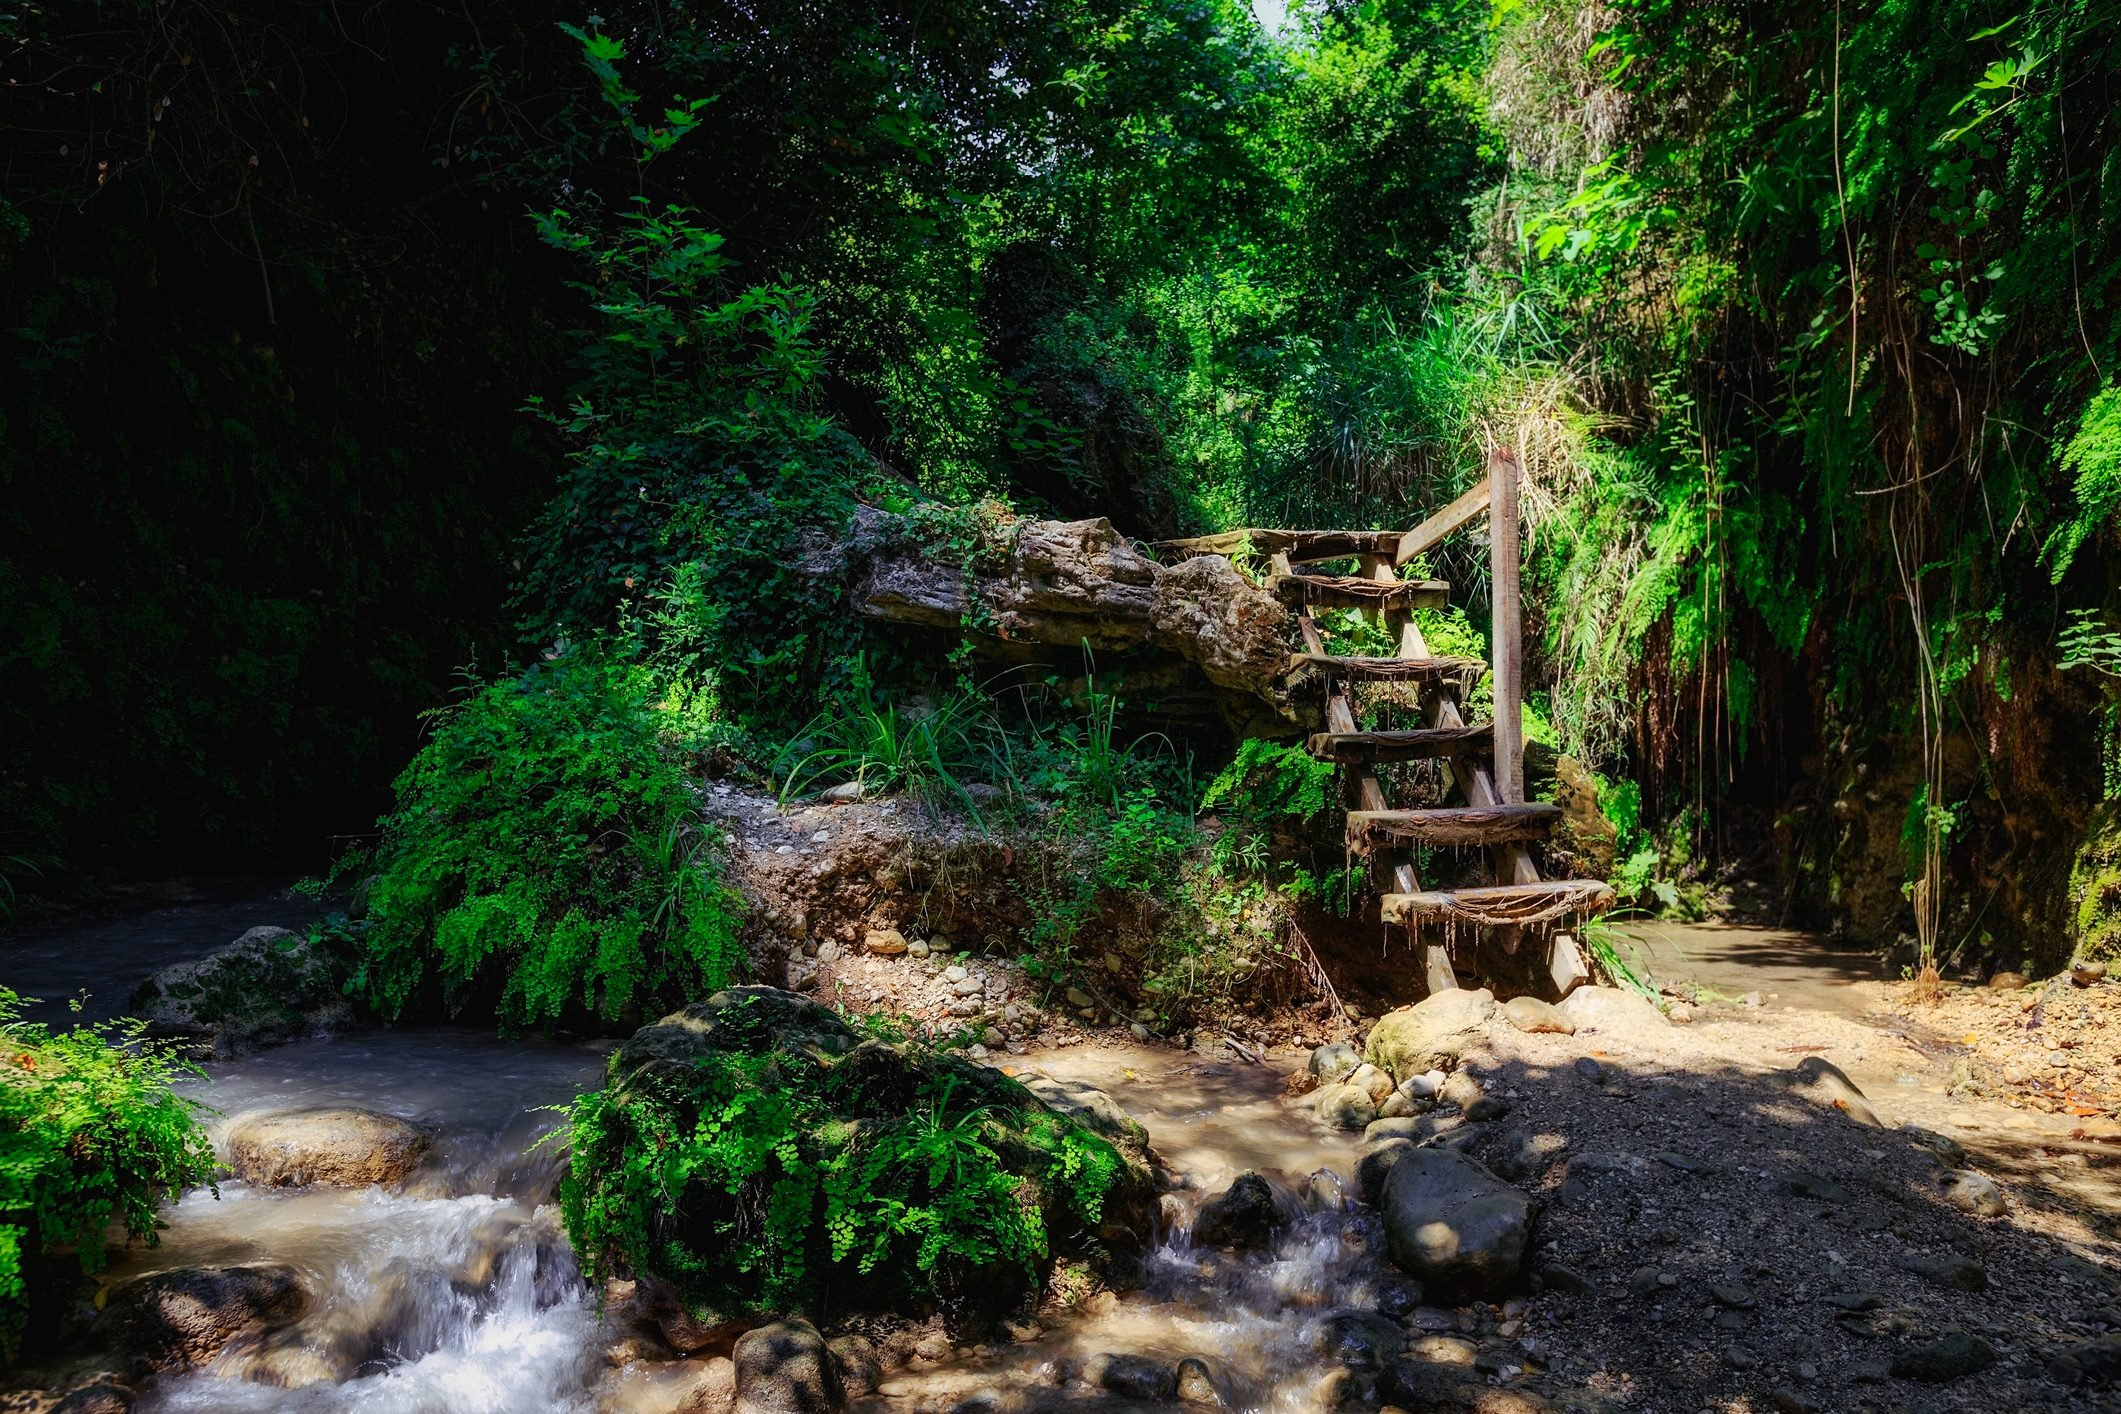 Fairytale forest landscape with wooden staircase